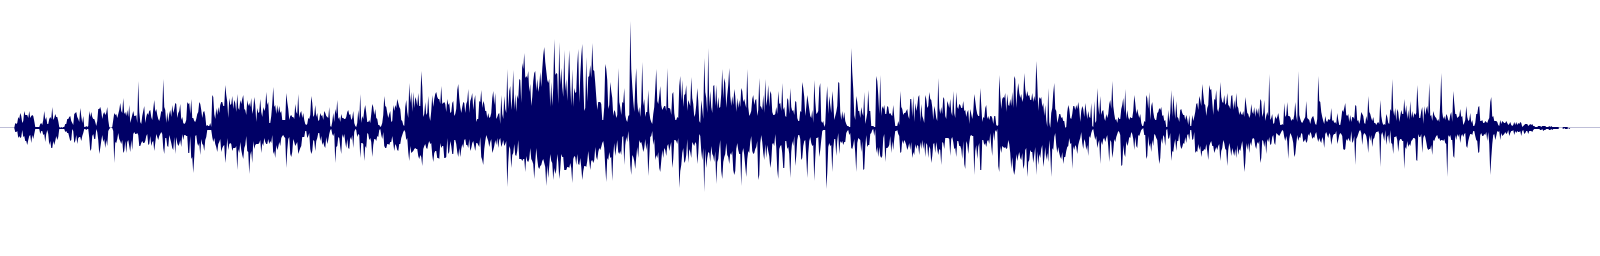 waveform of track #93834